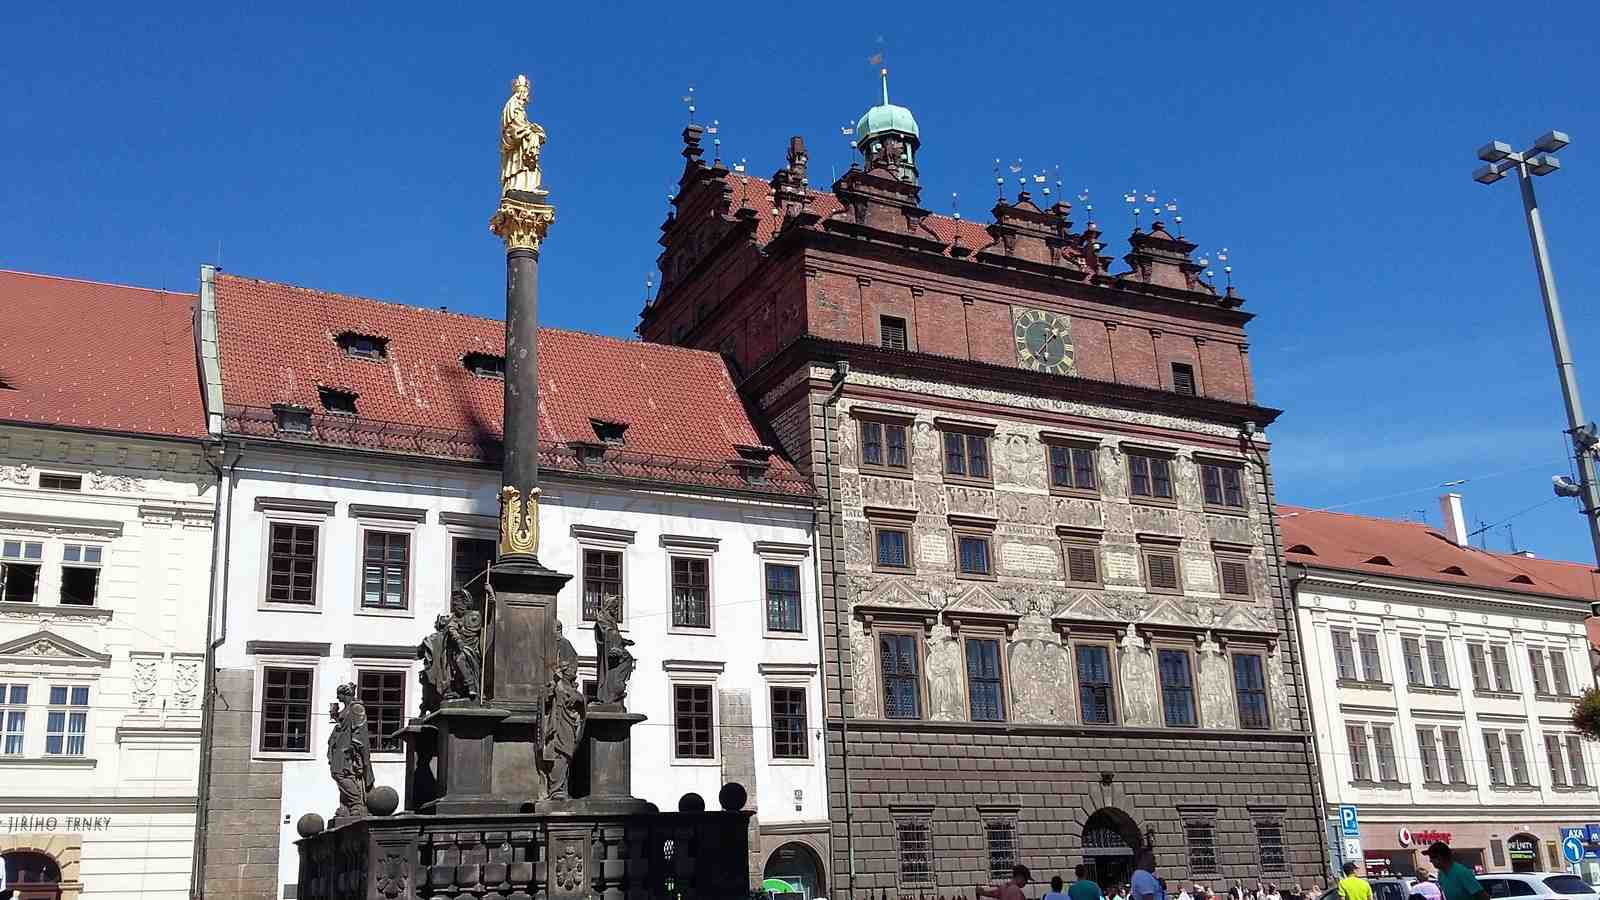 Pilsen sightseeings: The Plague Column on Republic Square in Plzeň